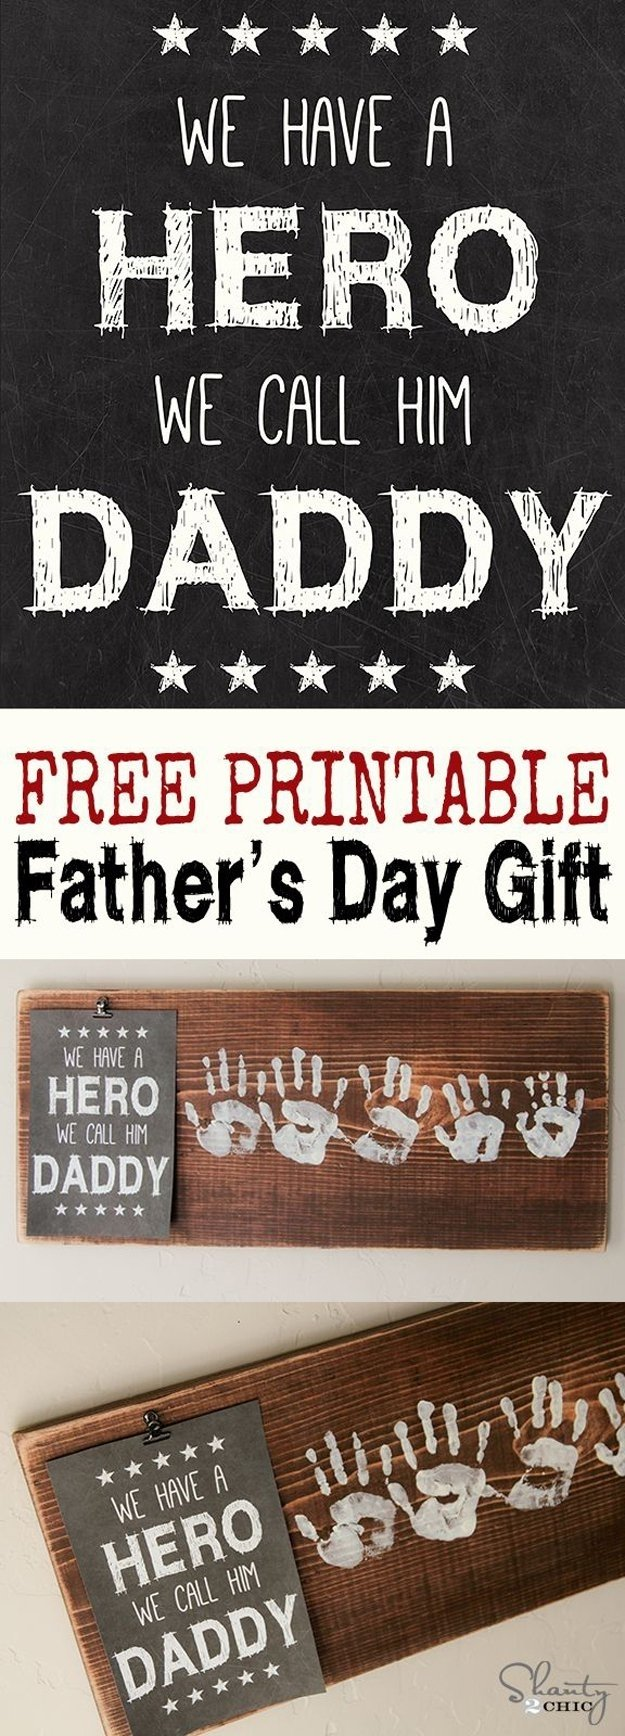 10 Elegant Cool Fathers Day Gift Ideas 25 cool diy fathers day gift ideas diy projects and crafts 2020